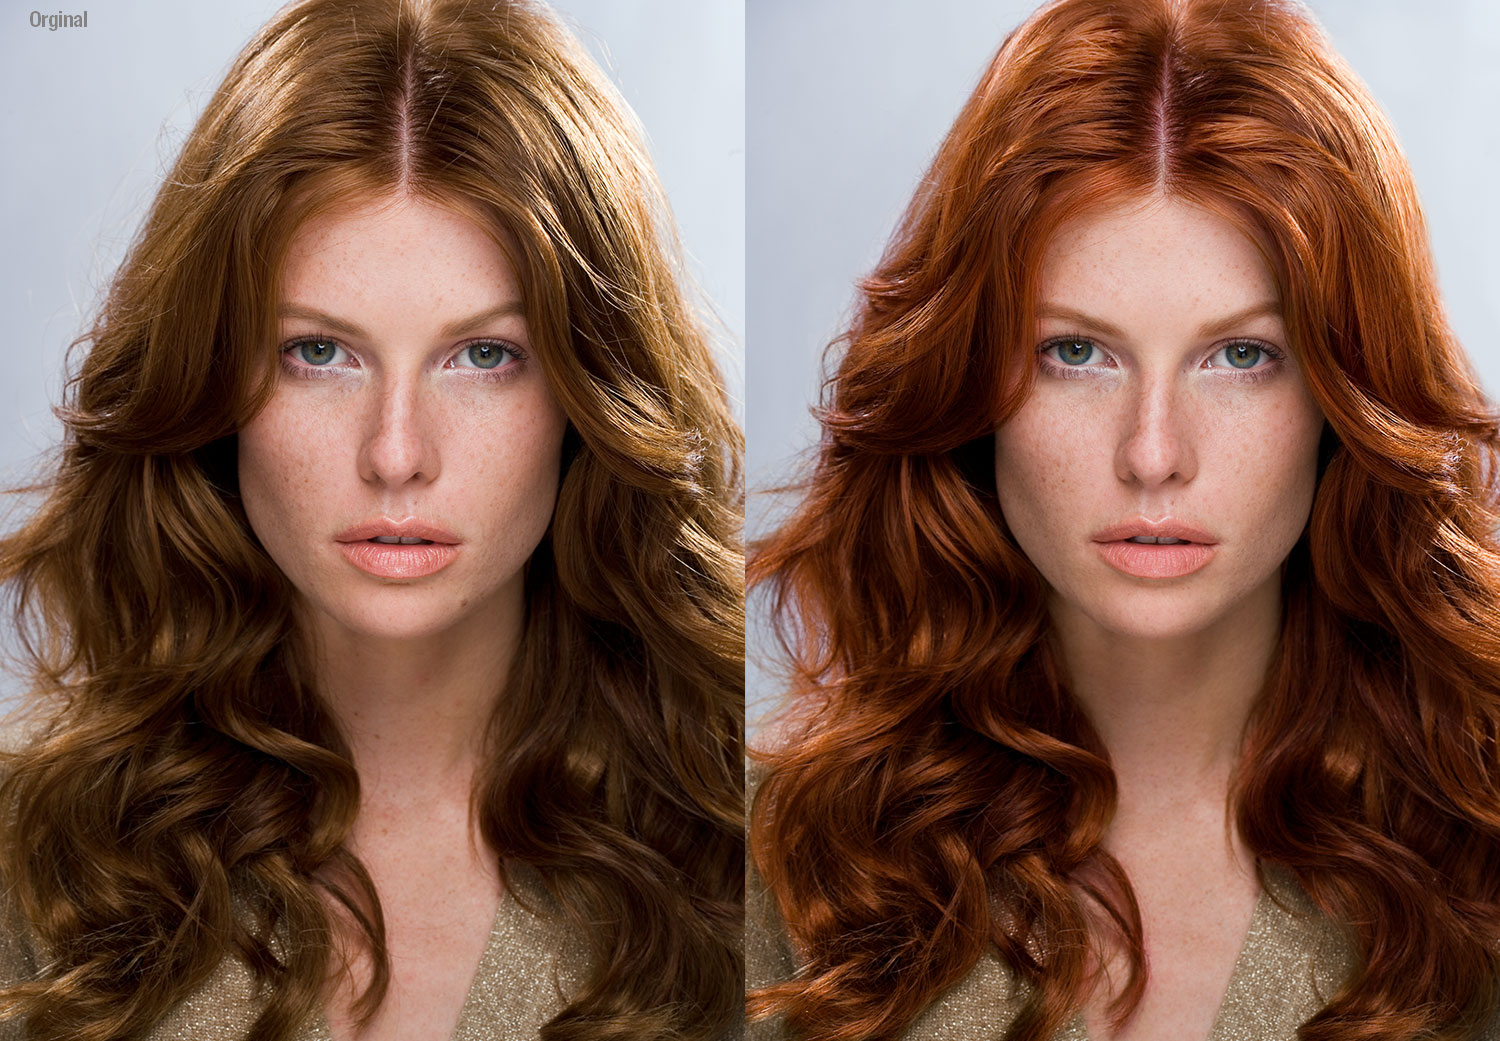 Retouching-People-Hair2.jpg